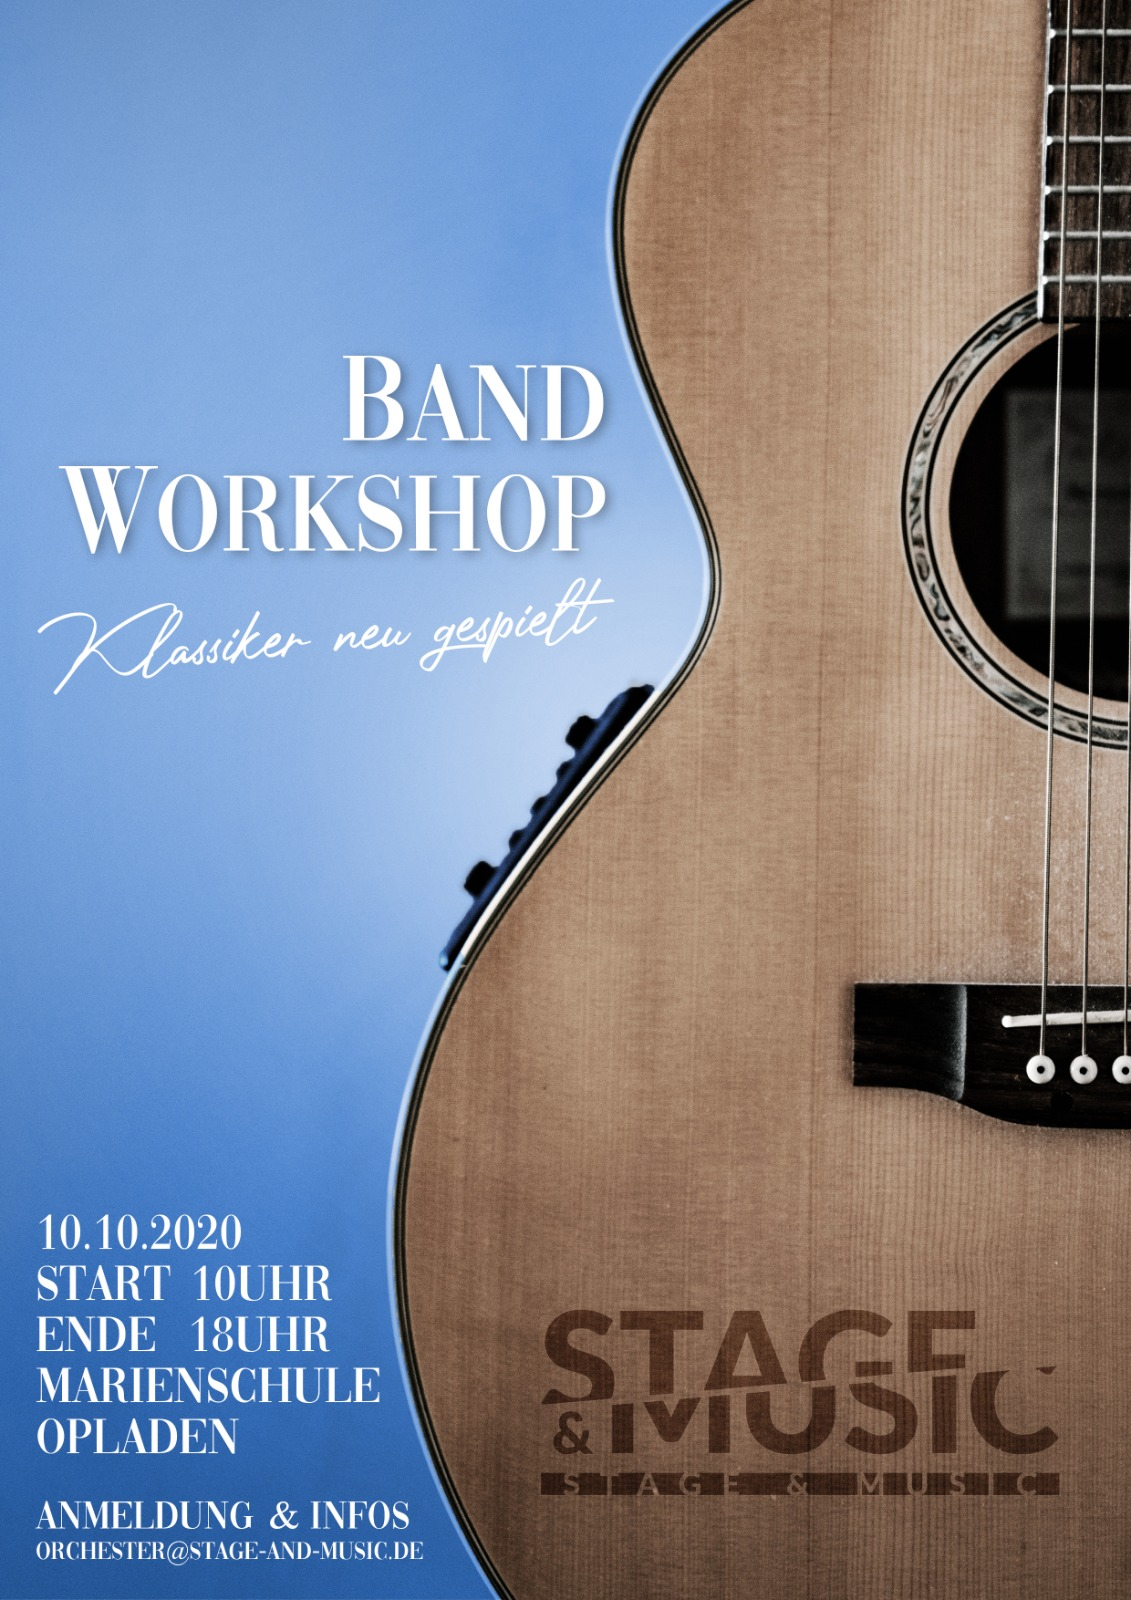 Bandworkshop am 10.10.2020